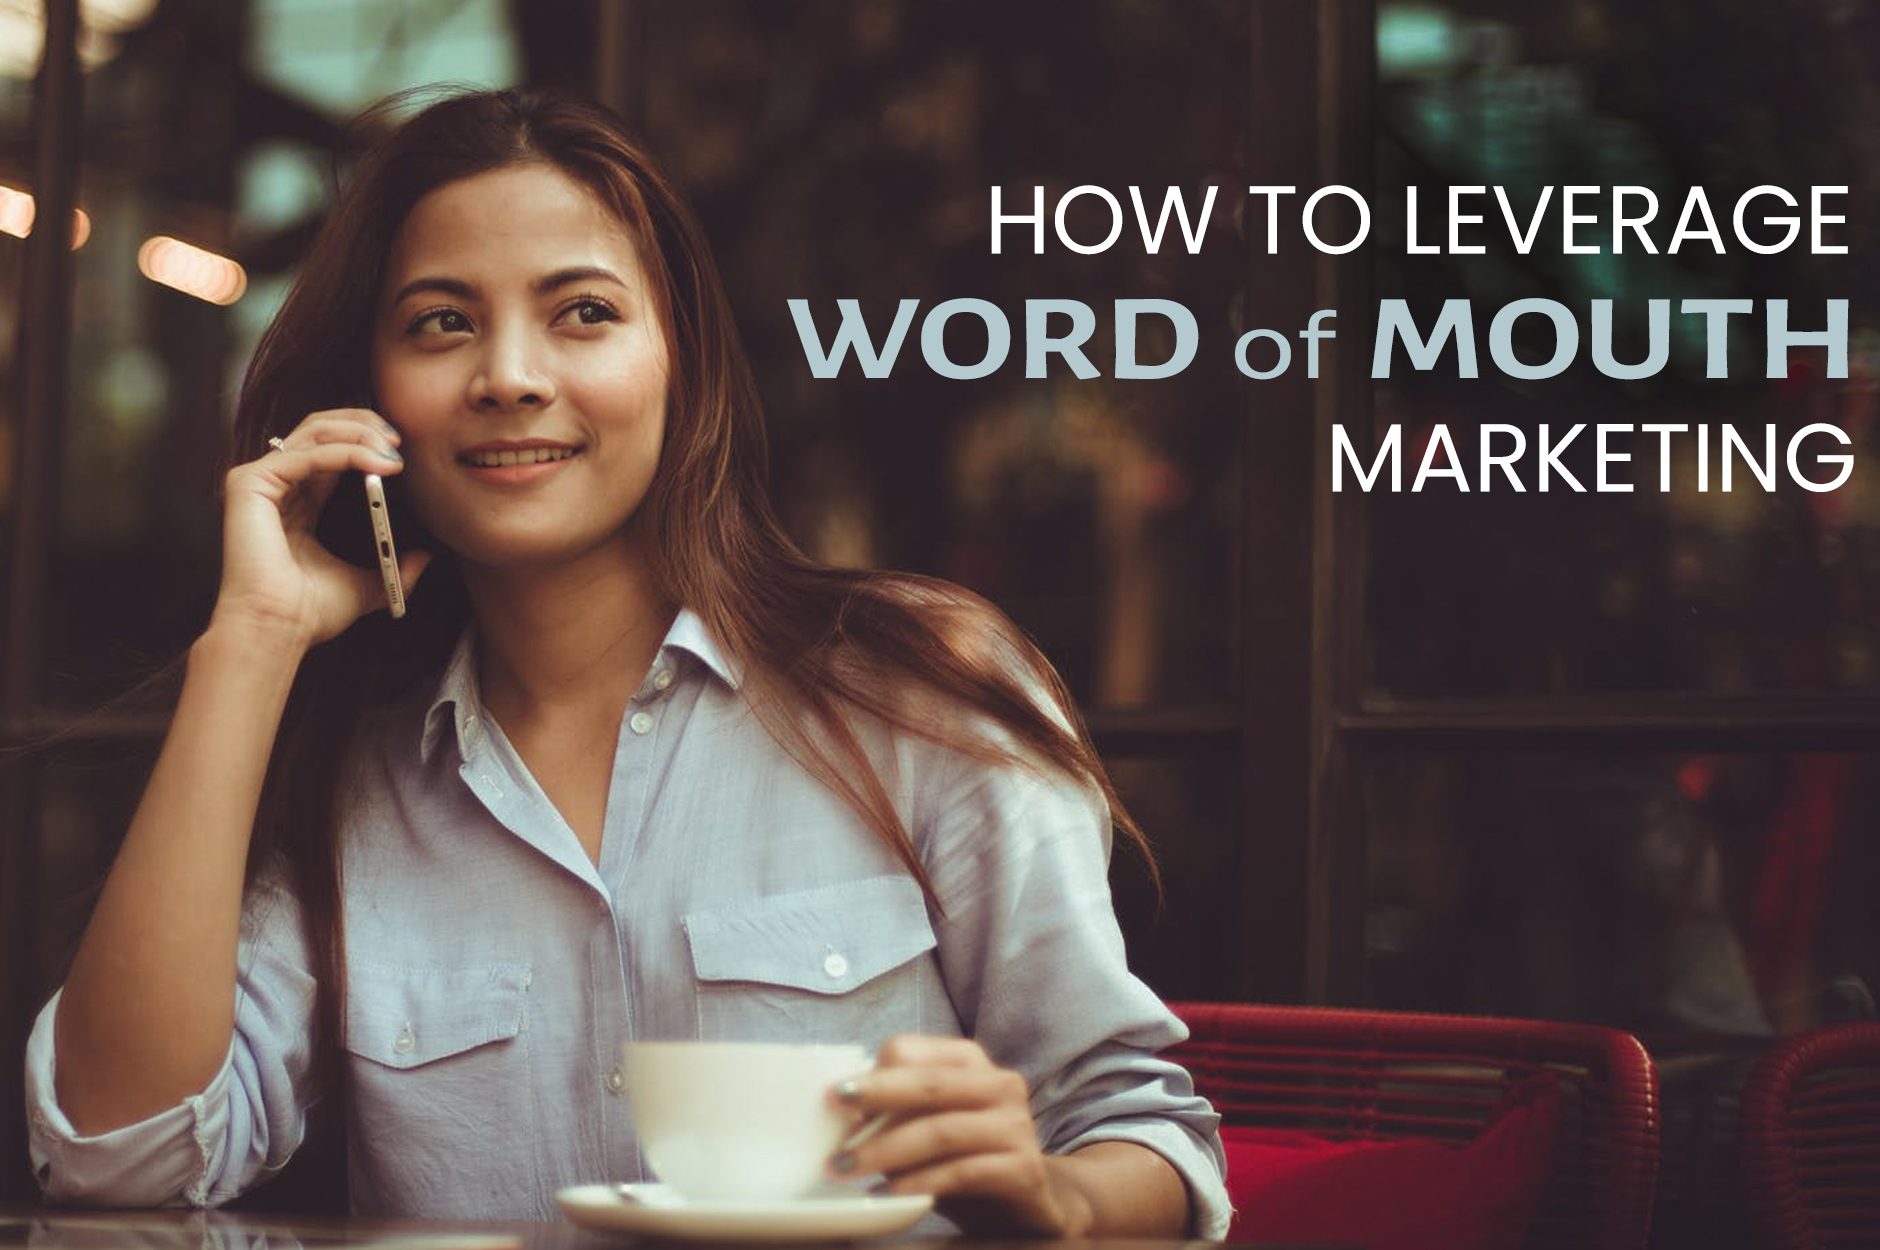 Restaurant Marketing: The Power of Word of Mouth